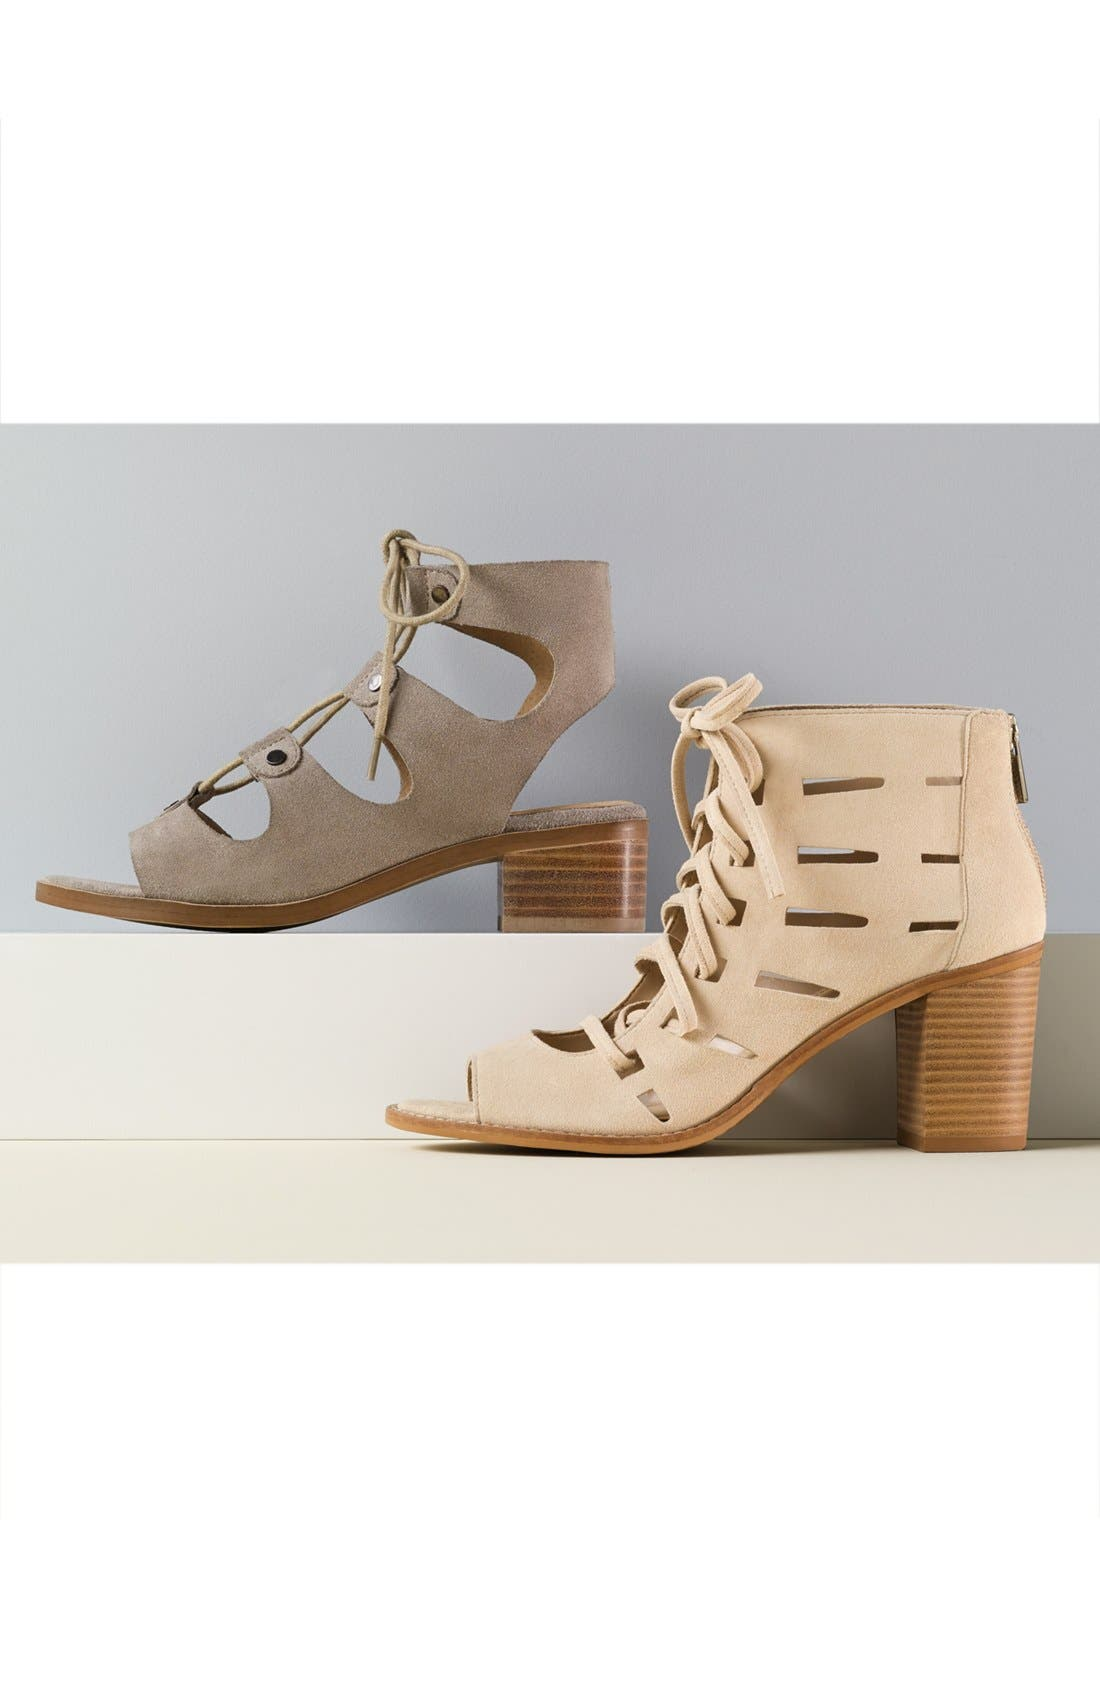 VINCE CAMUTO,                             Tressa Perforated Lace-Up Sandal,                             Alternate thumbnail 5, color,                             001